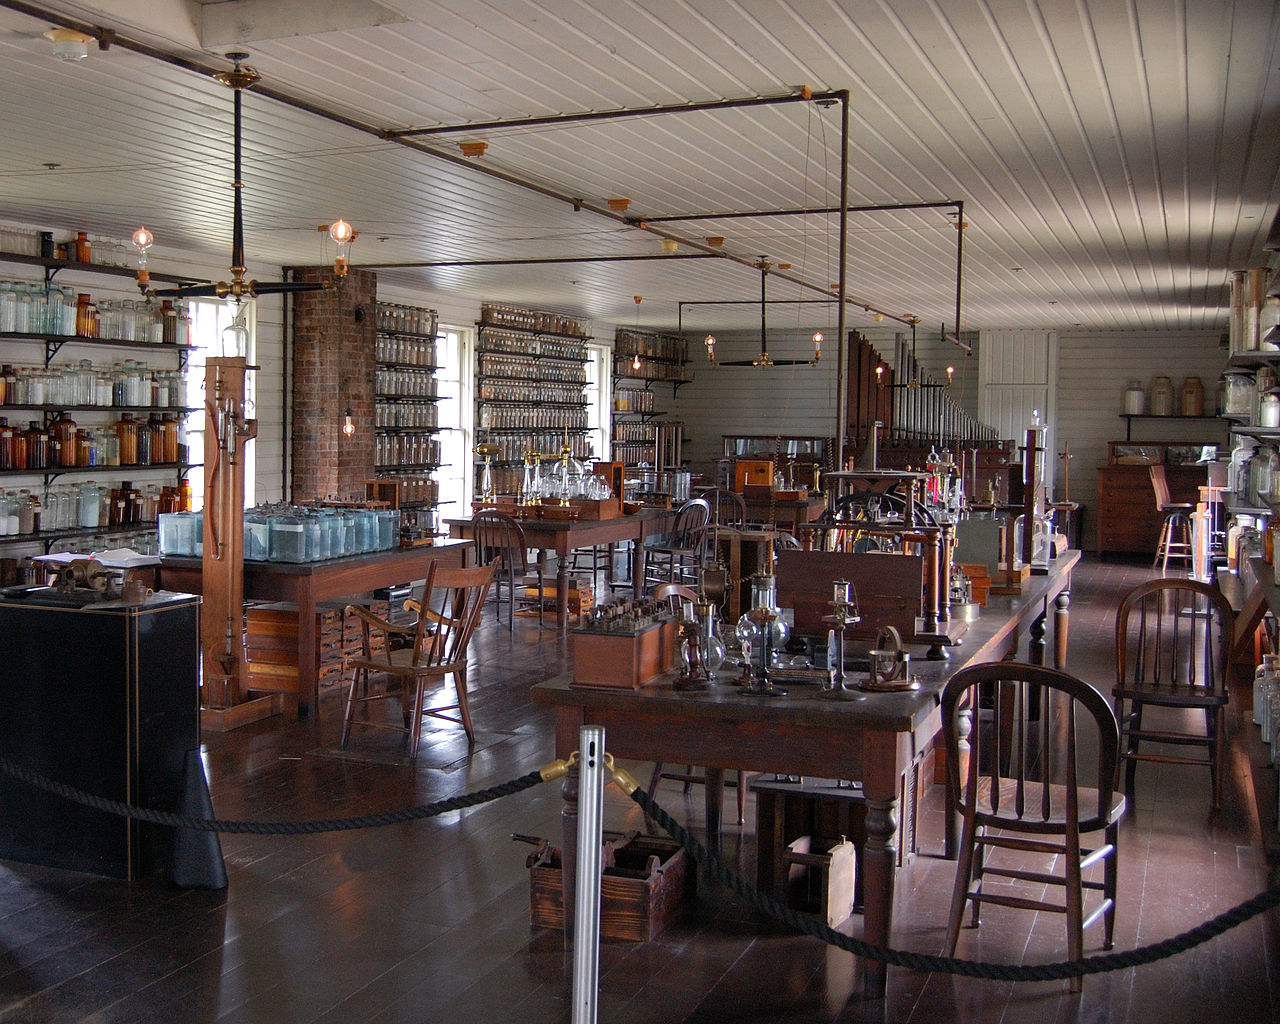 Edison's Menlo Park laboratory in New Jersey was the world's first research and development facility.